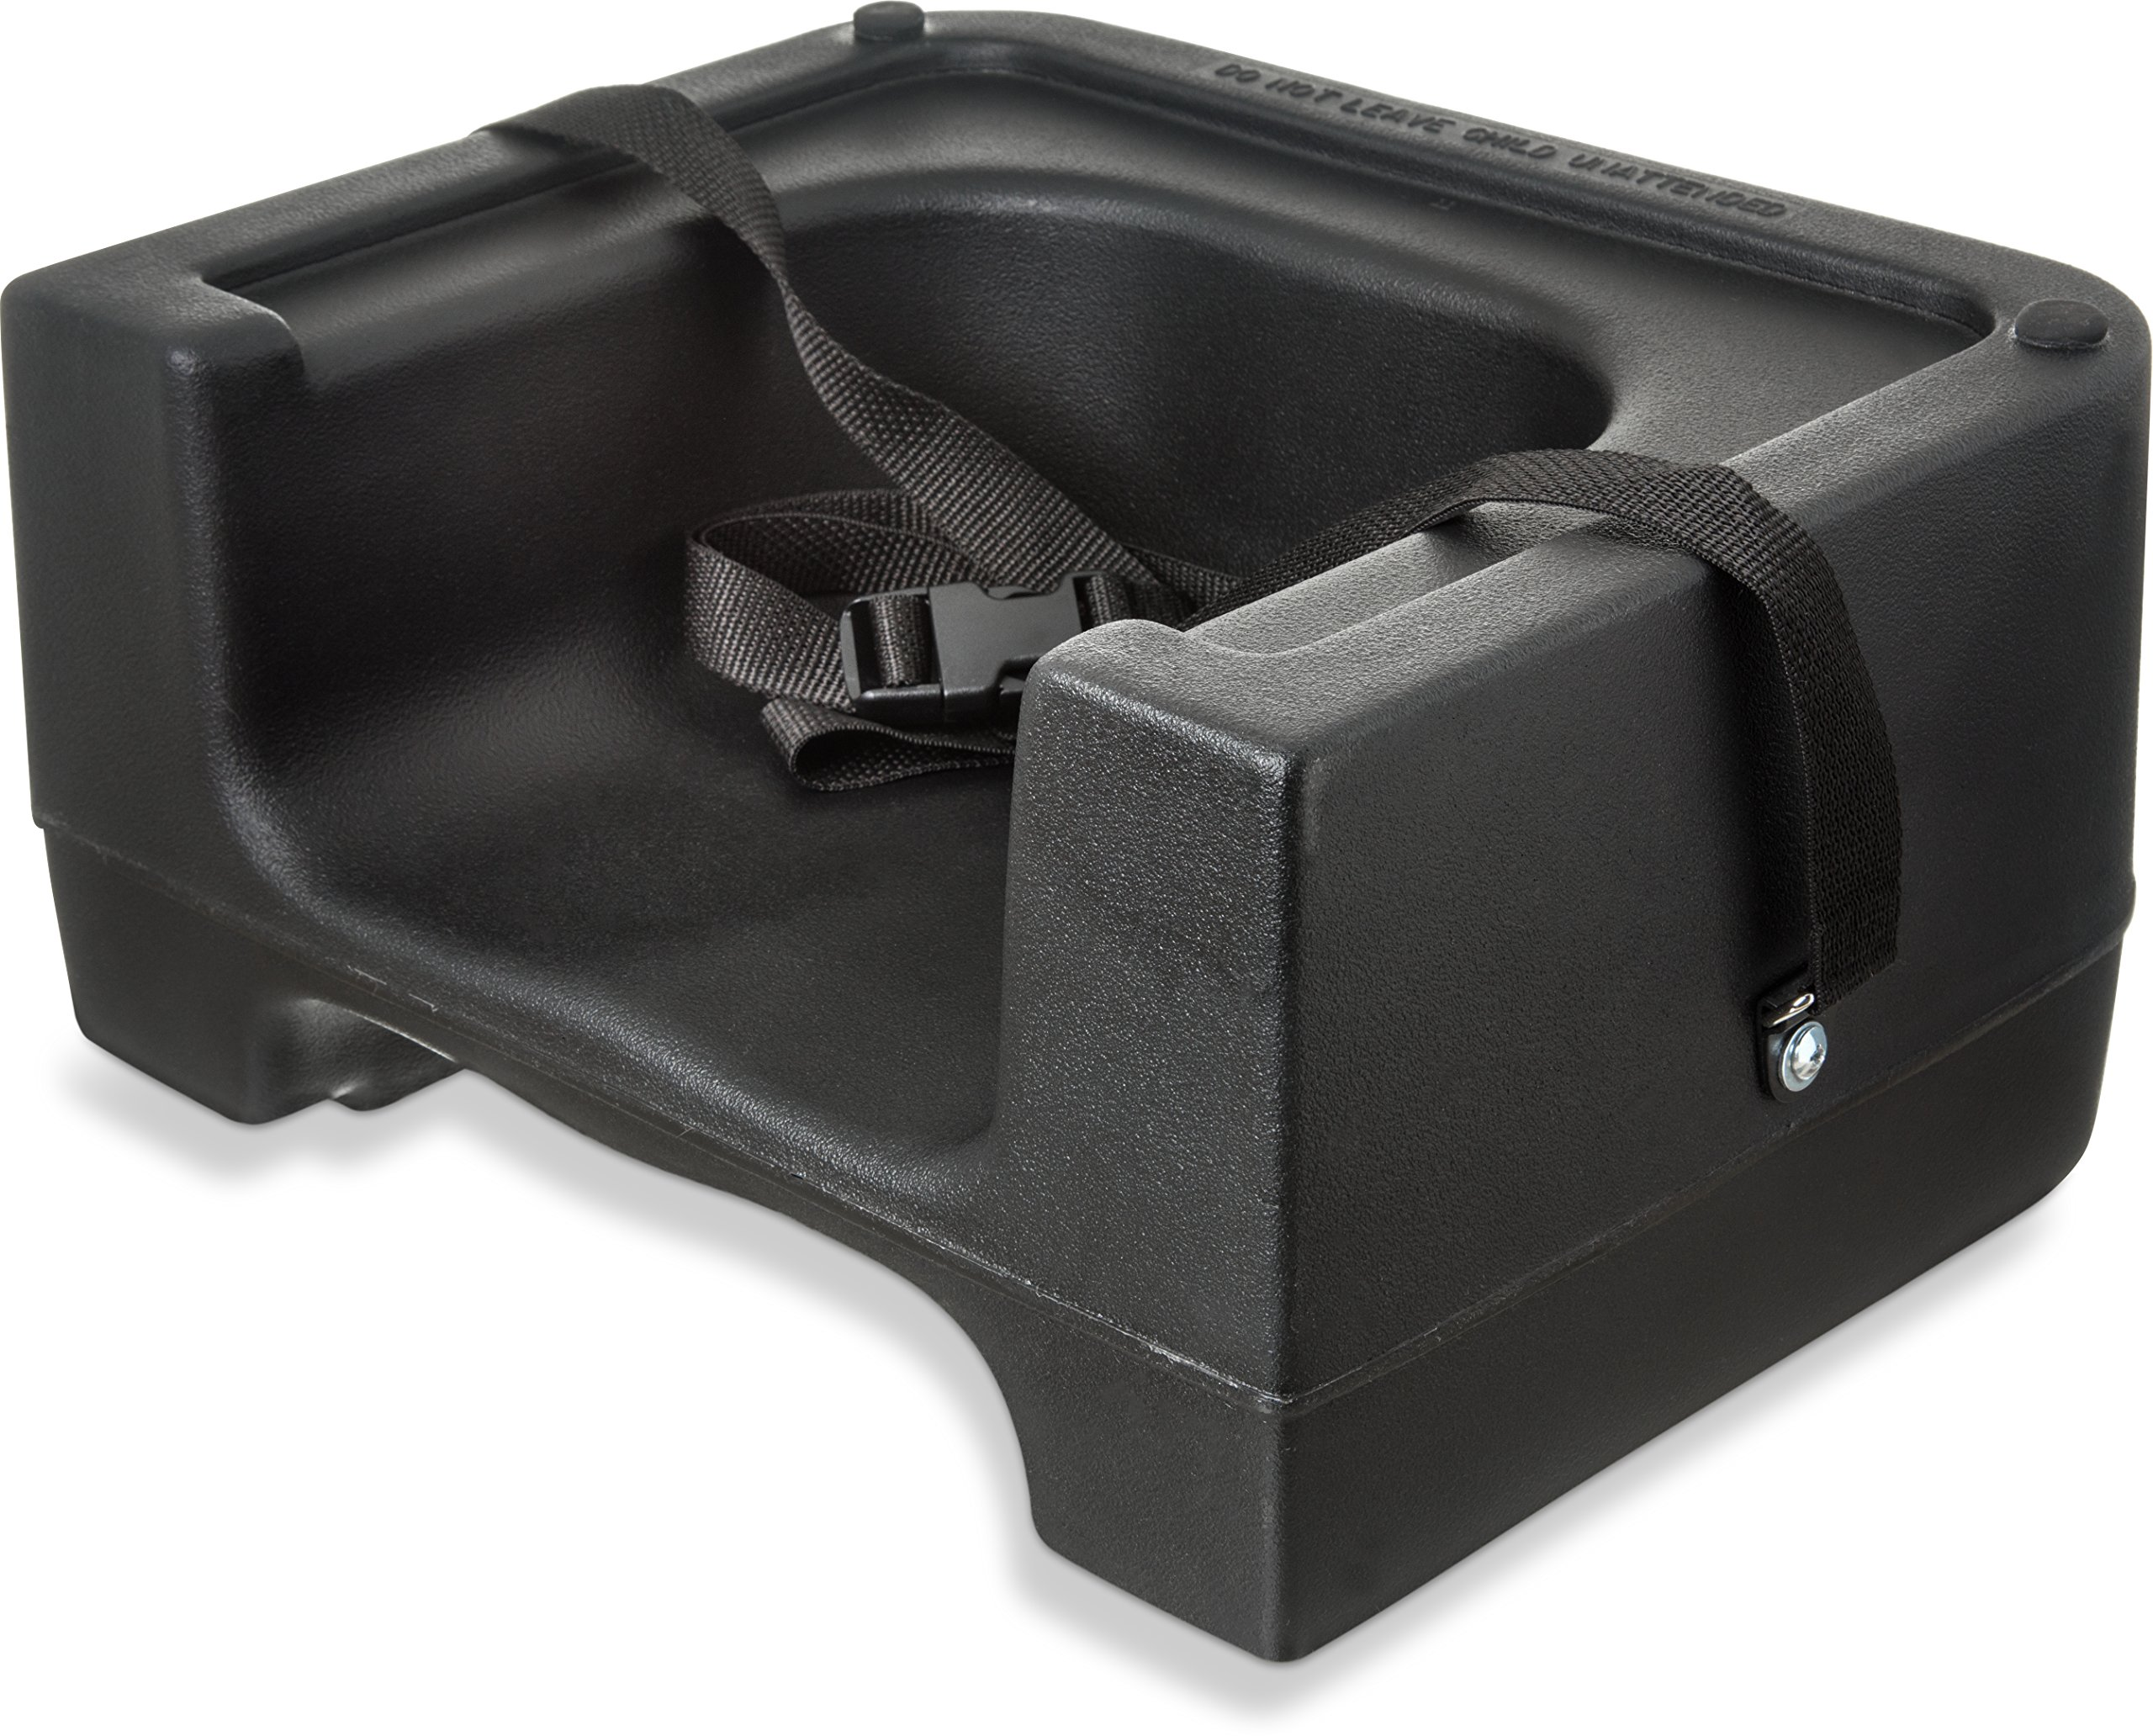 Carlisle 7111-403 Plastic Dual Seat Restaurant-Style Booster Chair with Safety Strap, Black (Pack of 4)